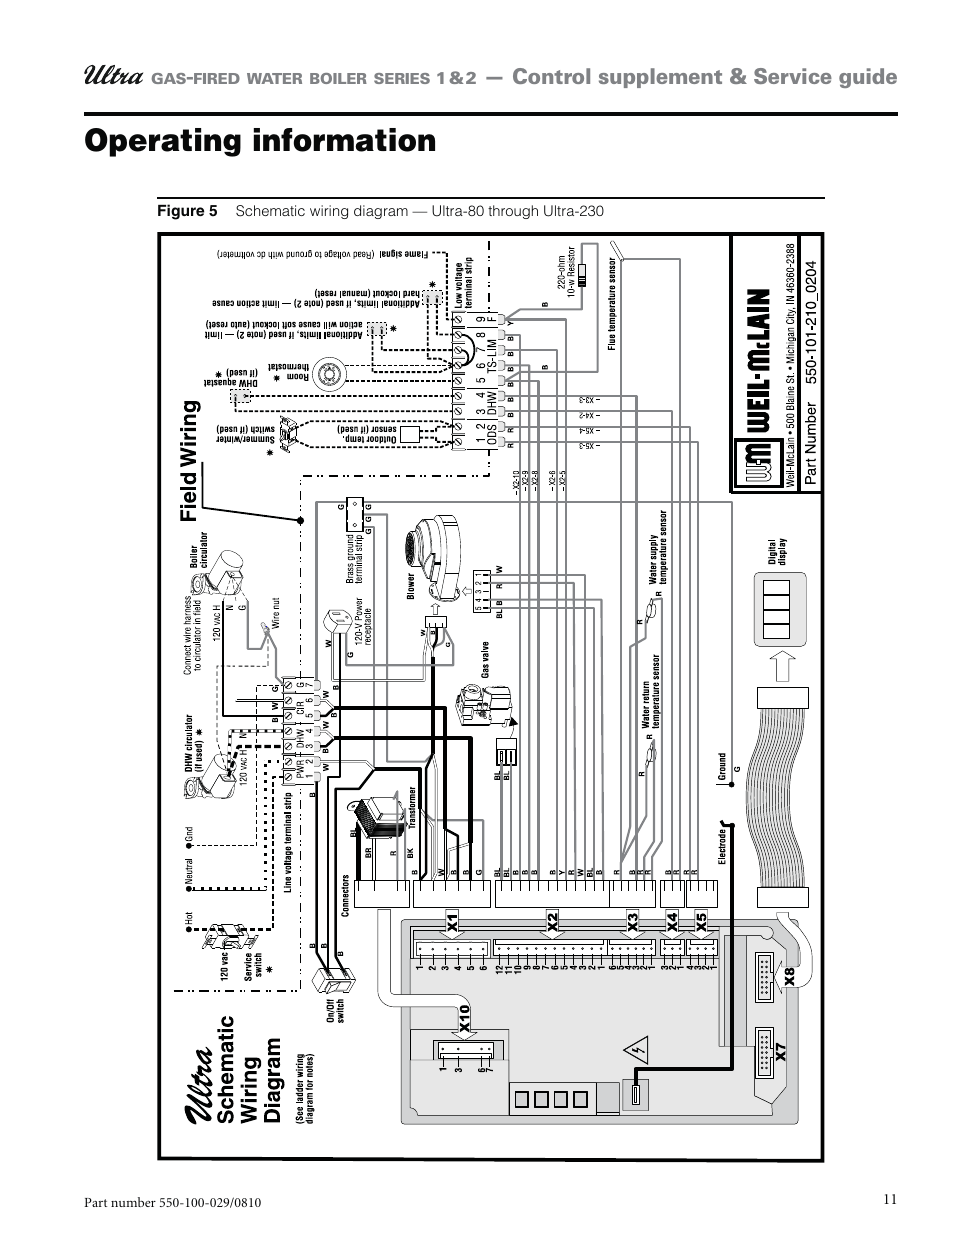 hight resolution of operating information weil mclain ultra 230 user manual page 11 60weil mclain wiring diagram 5